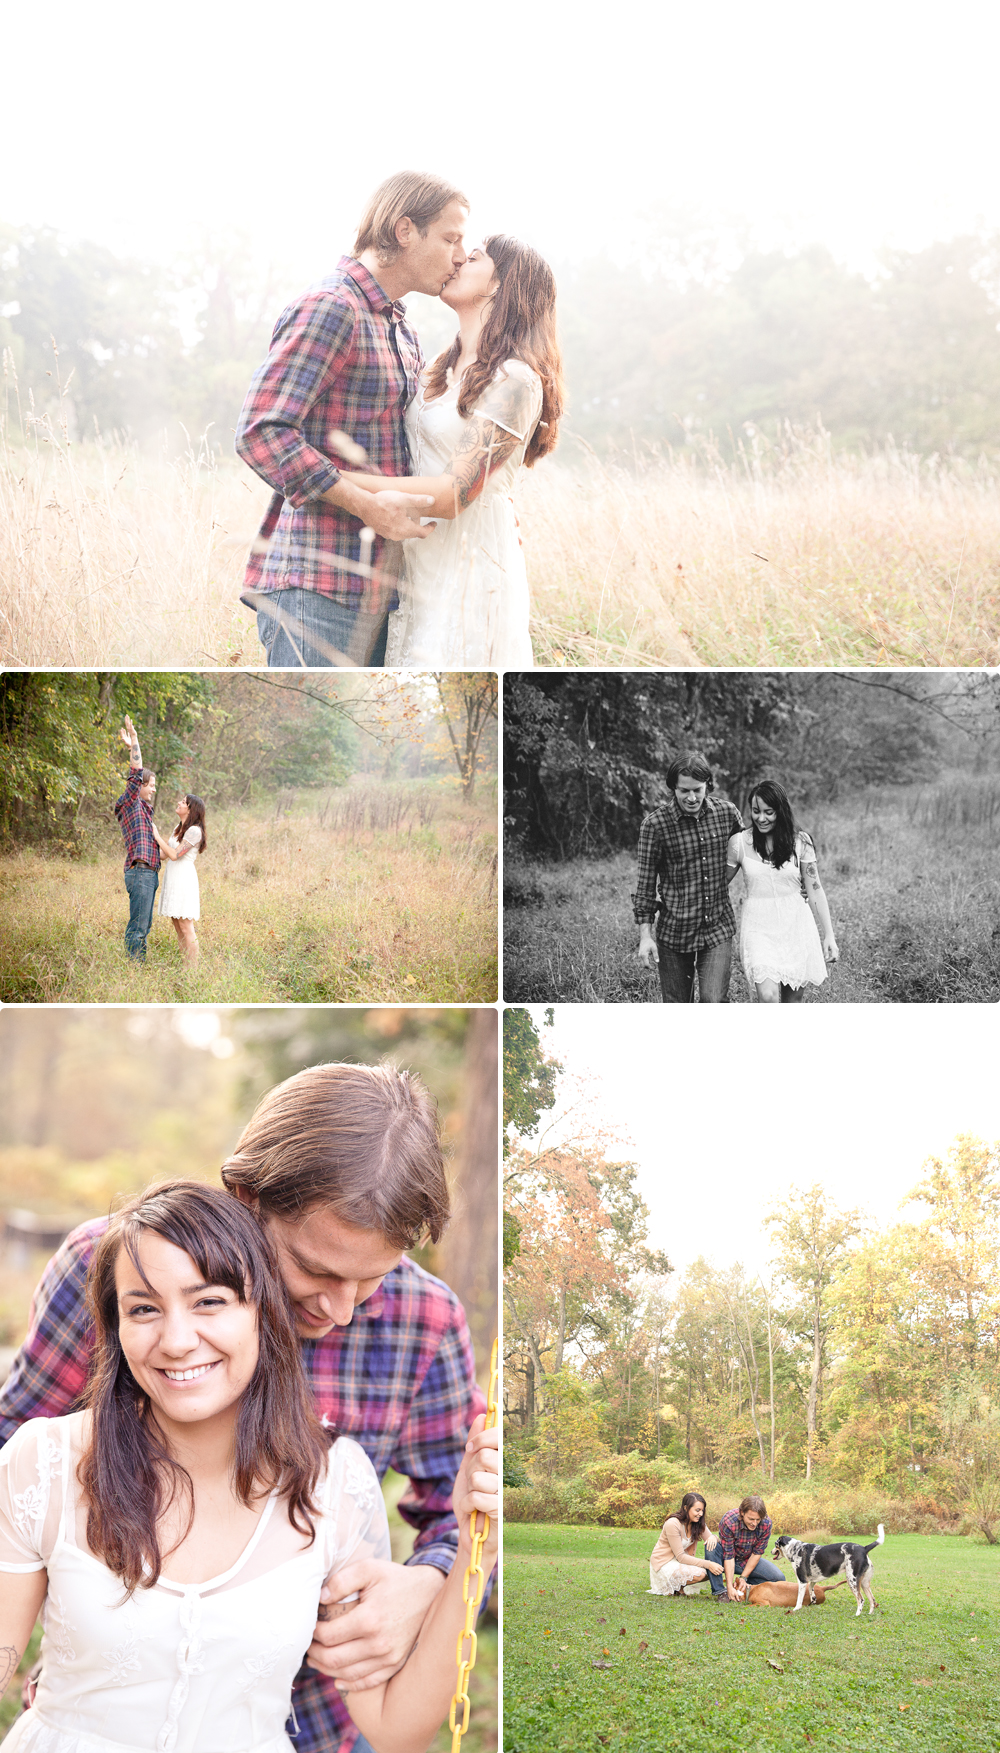 misty engagement session